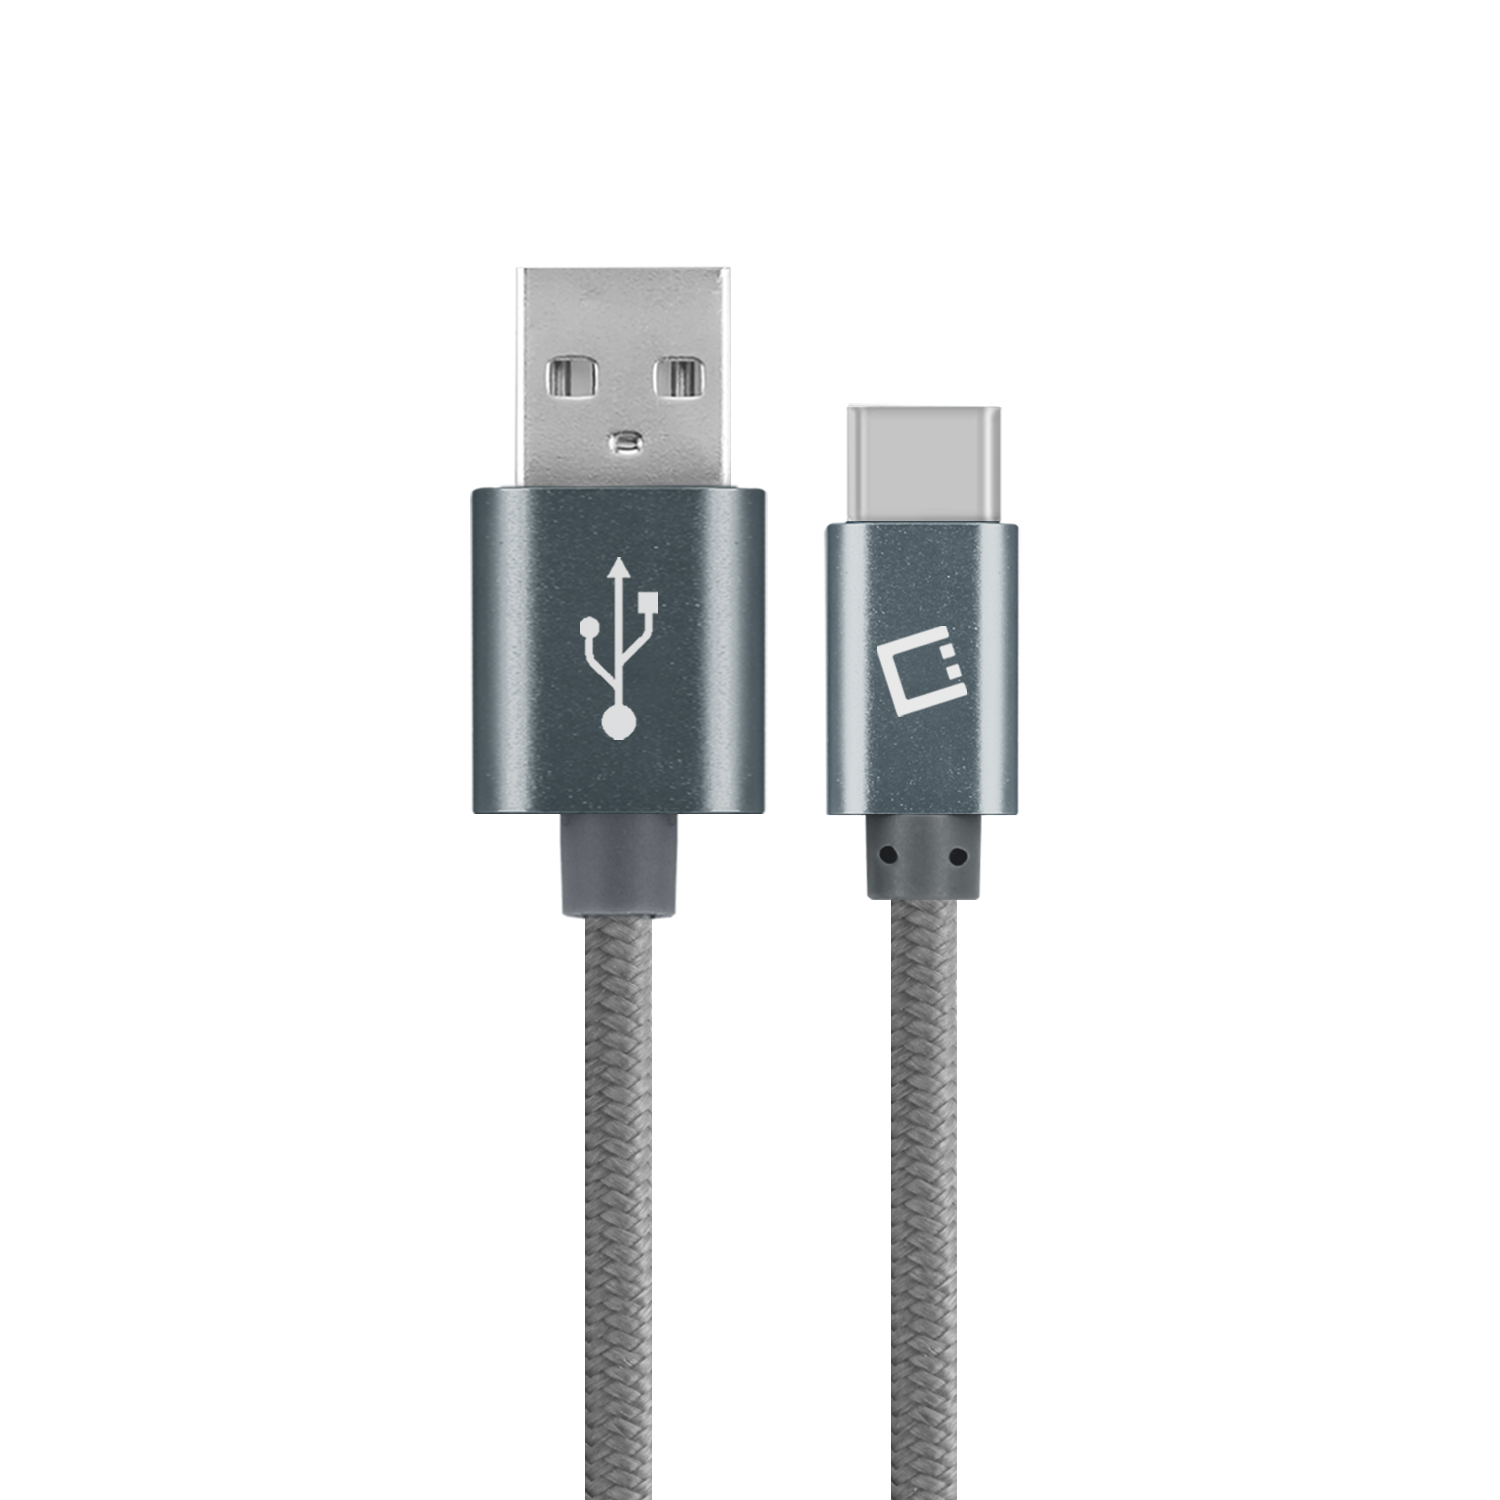 Samsung Galaxy S10e USB Type-C To Type-A Braided Data Power Cable Grey 10ft Braided